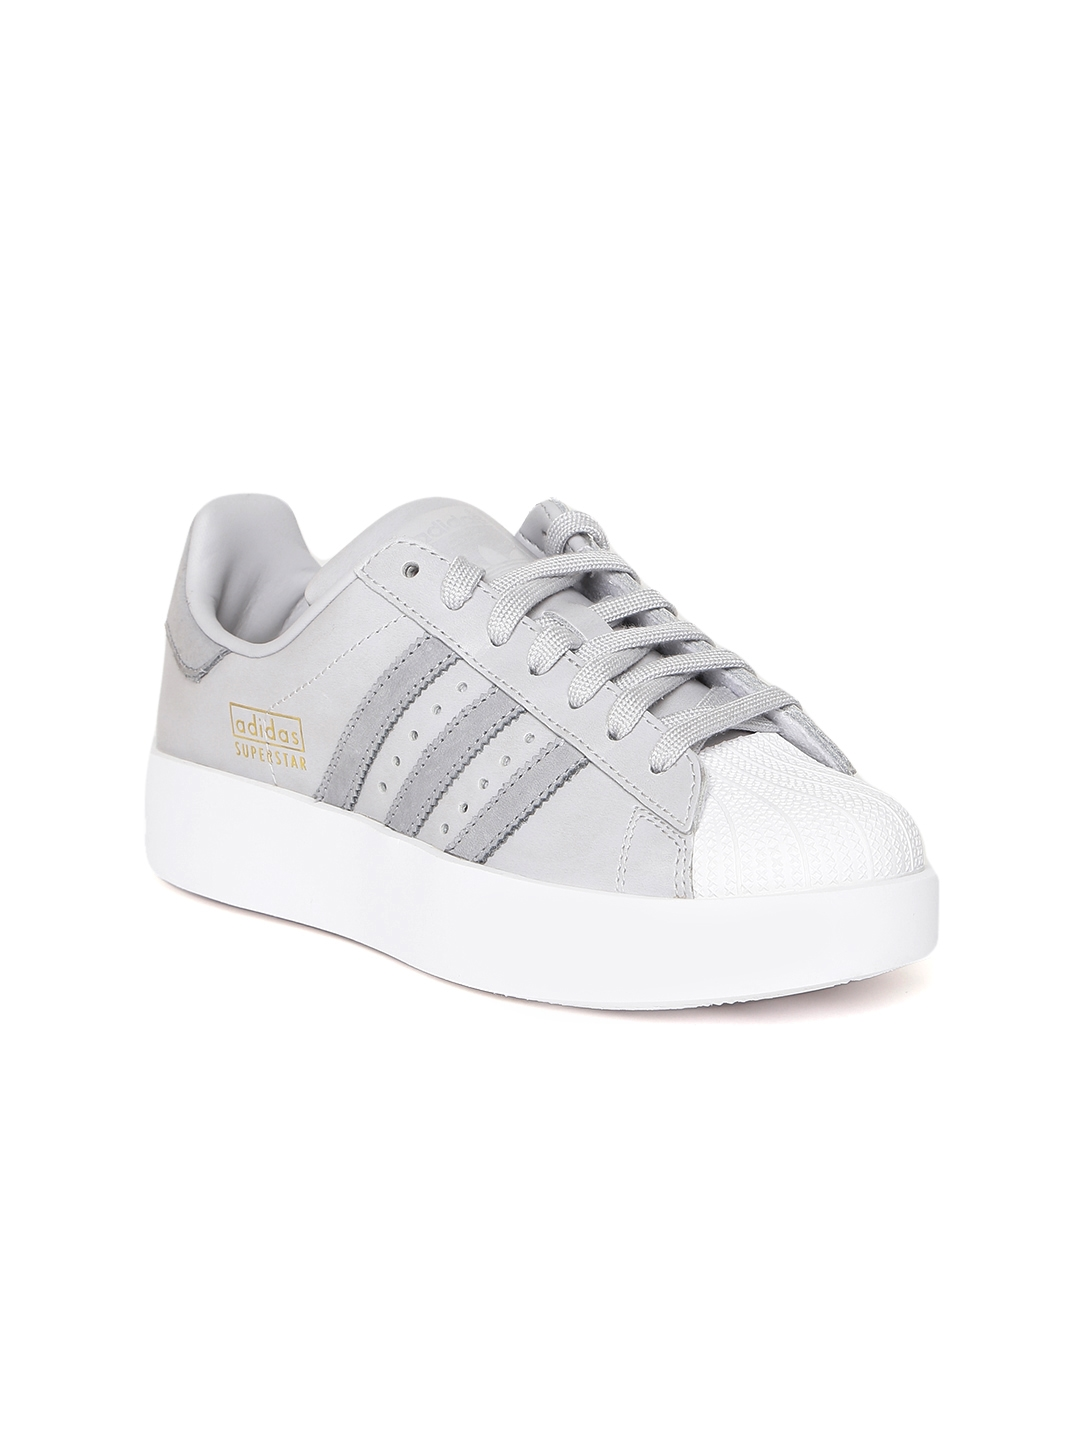 79e455fd2cf9 Buy ADIDAS Originals Women Grey SUPERSTAR BOLD Sneakers - Casual ...